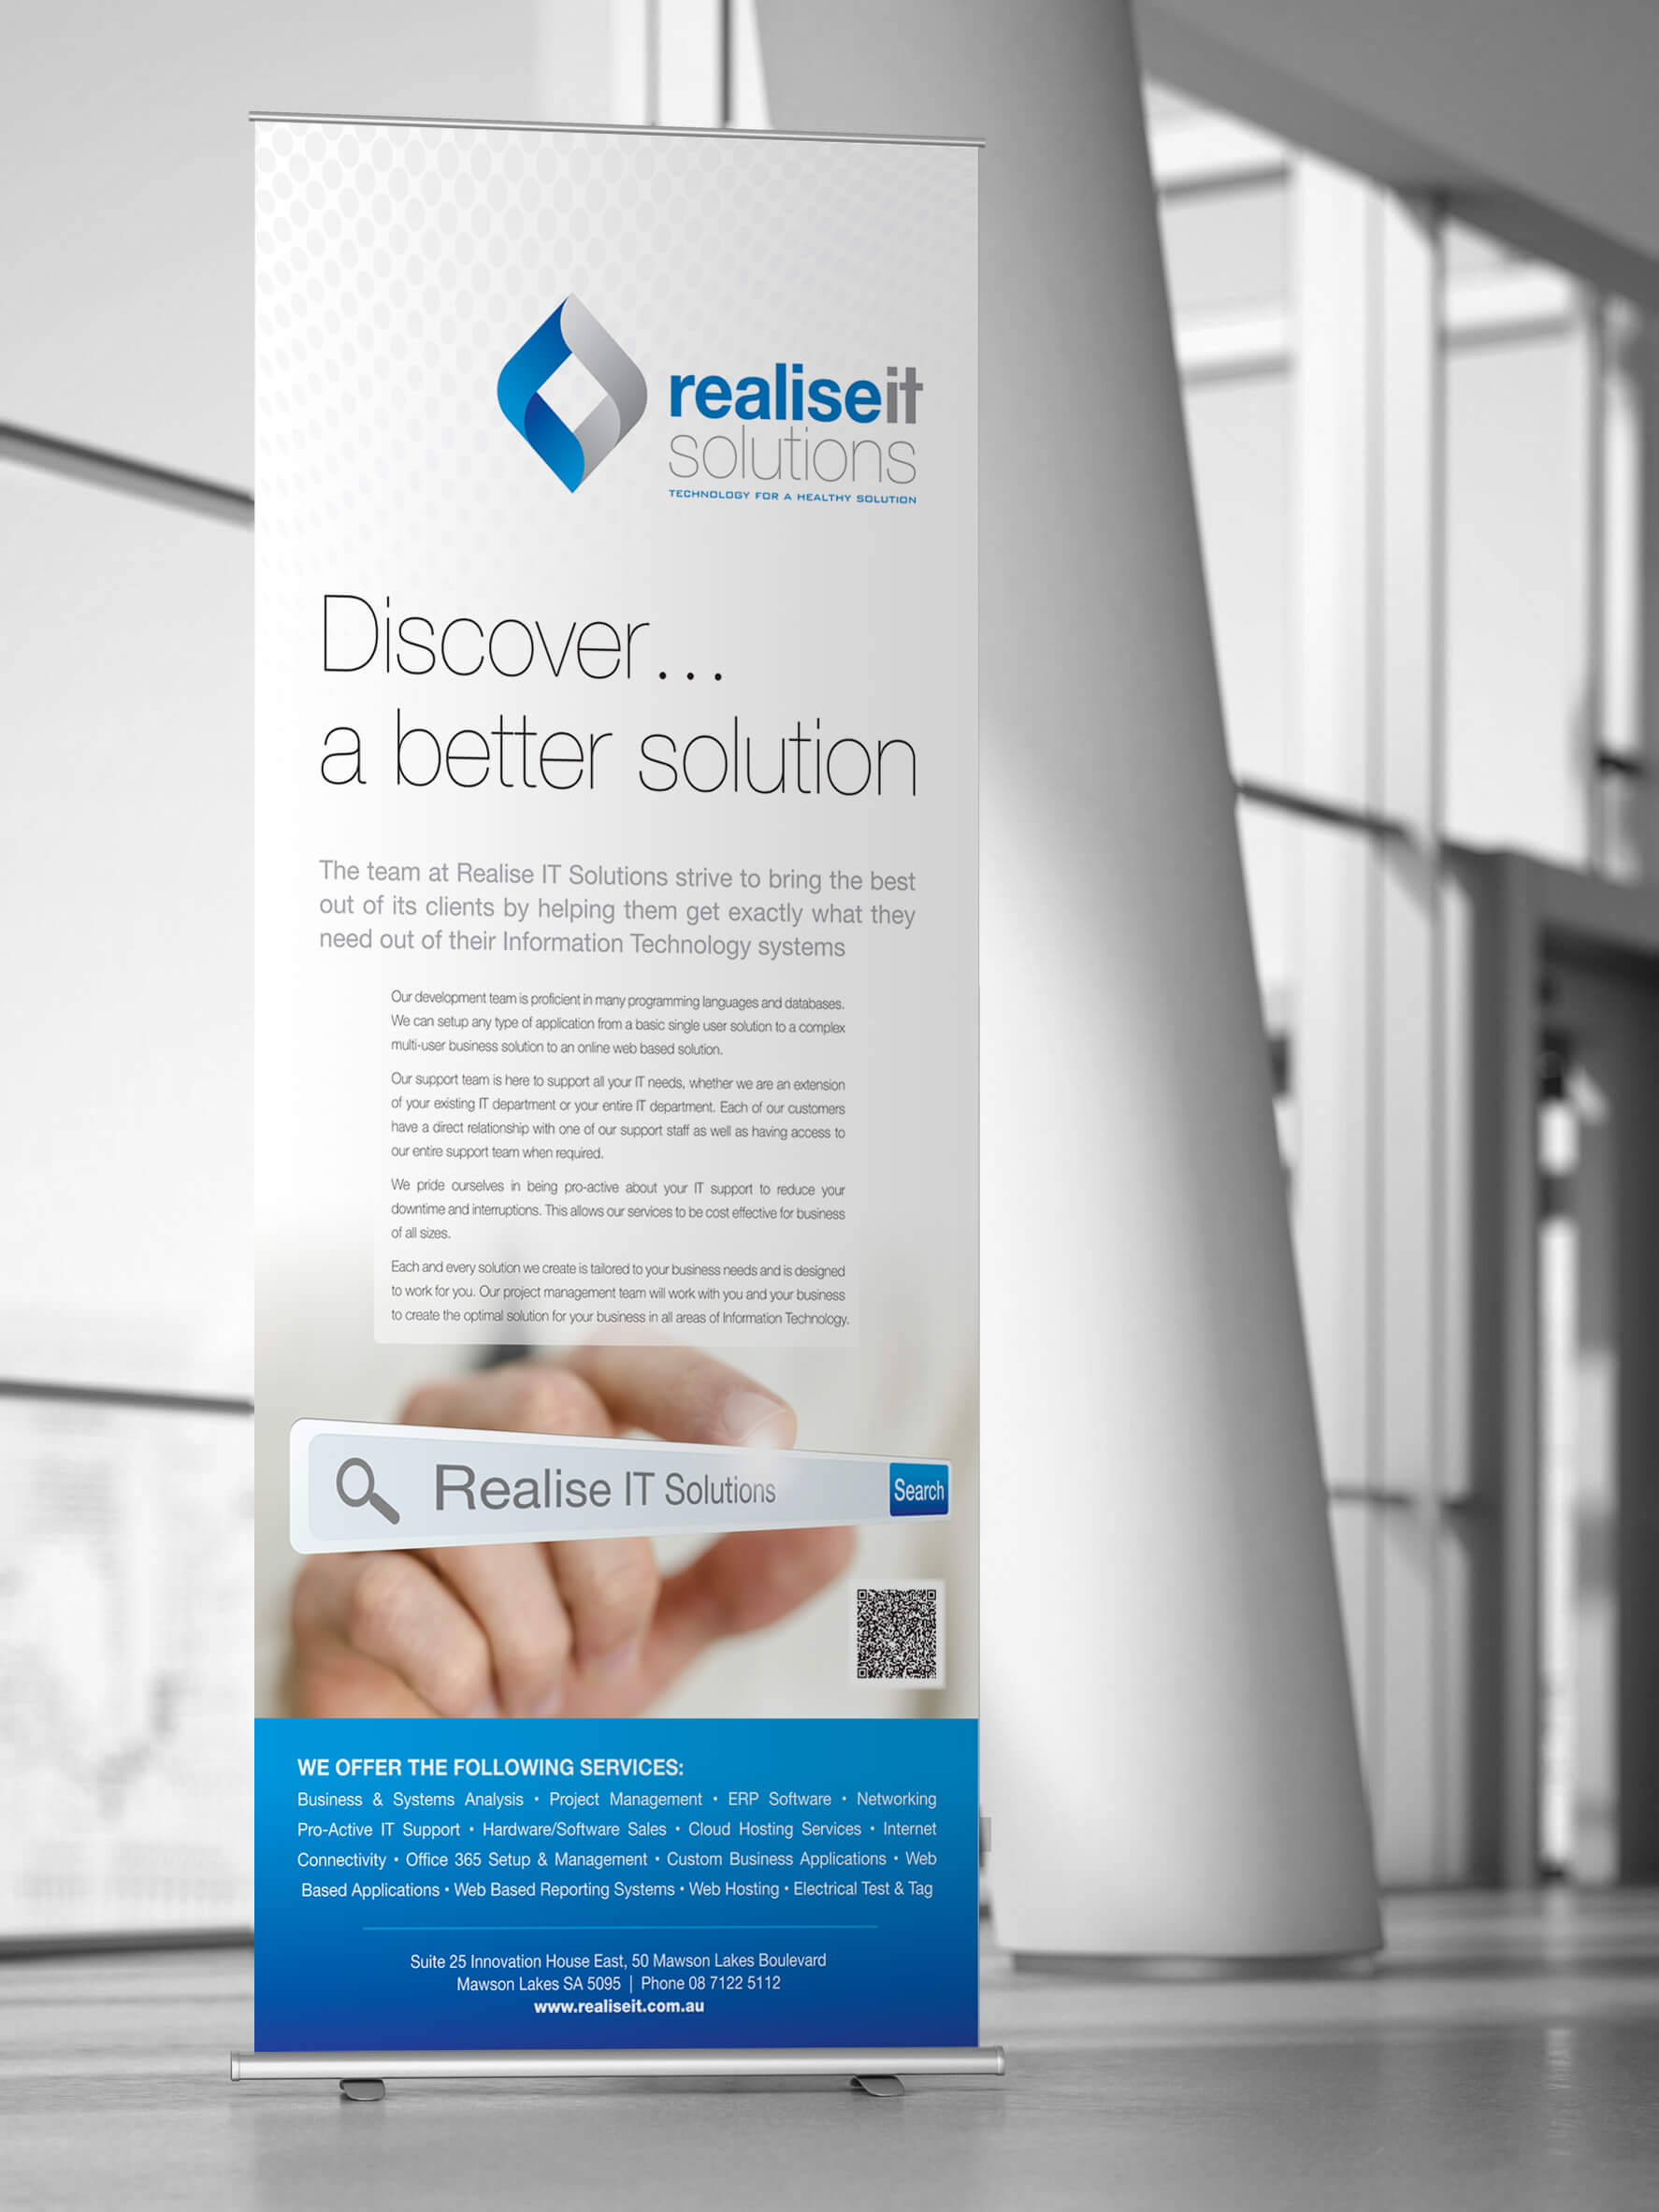 Icon Graphic Design Adelaide - business card design page image of Realise IT pull-up display.